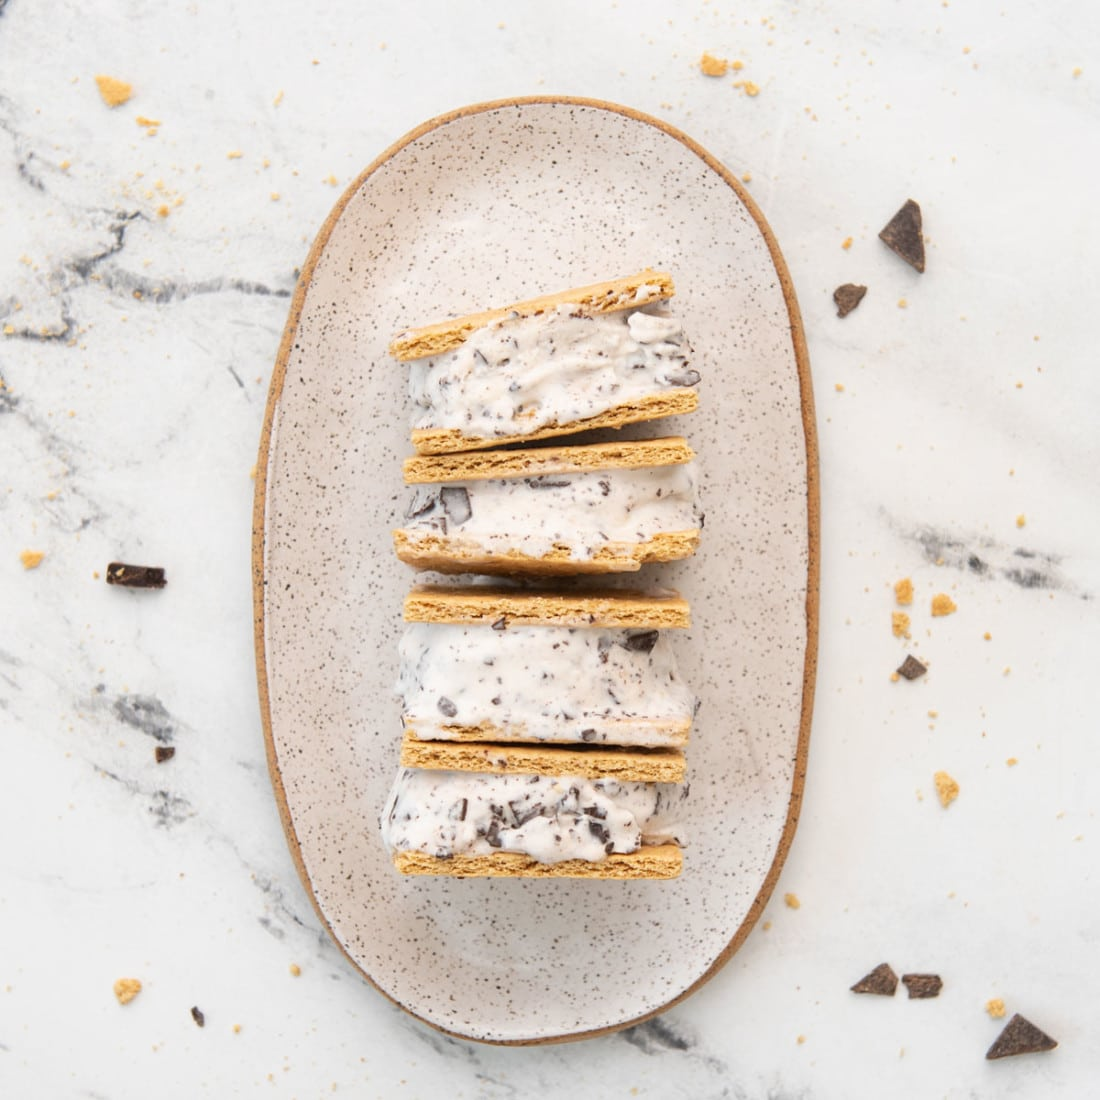 overhead view of four s'mores ice cream sandwiches on a platter